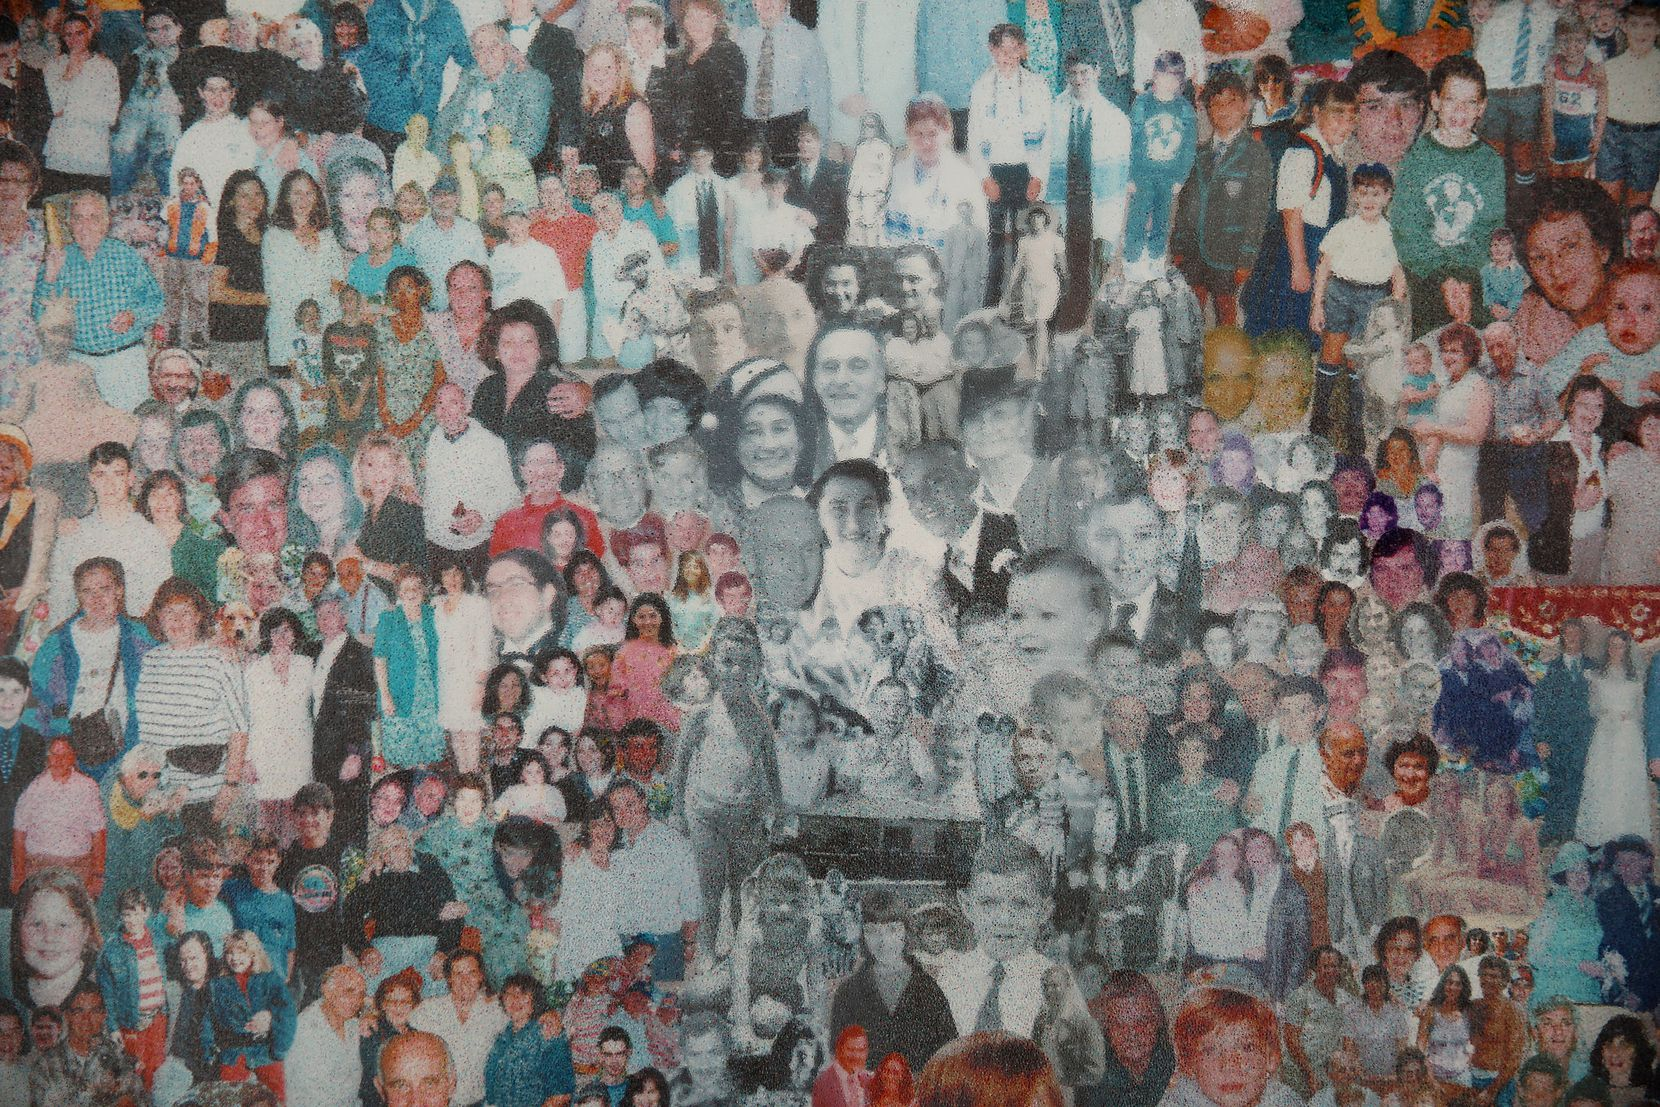 The Meyerland neighborhood is home to the Evelyn Rubenstein Jewish Community Center of Houston, but it remains a racially diverse area. Flood victims had to leave behind family photos and theological texts that were damaged.